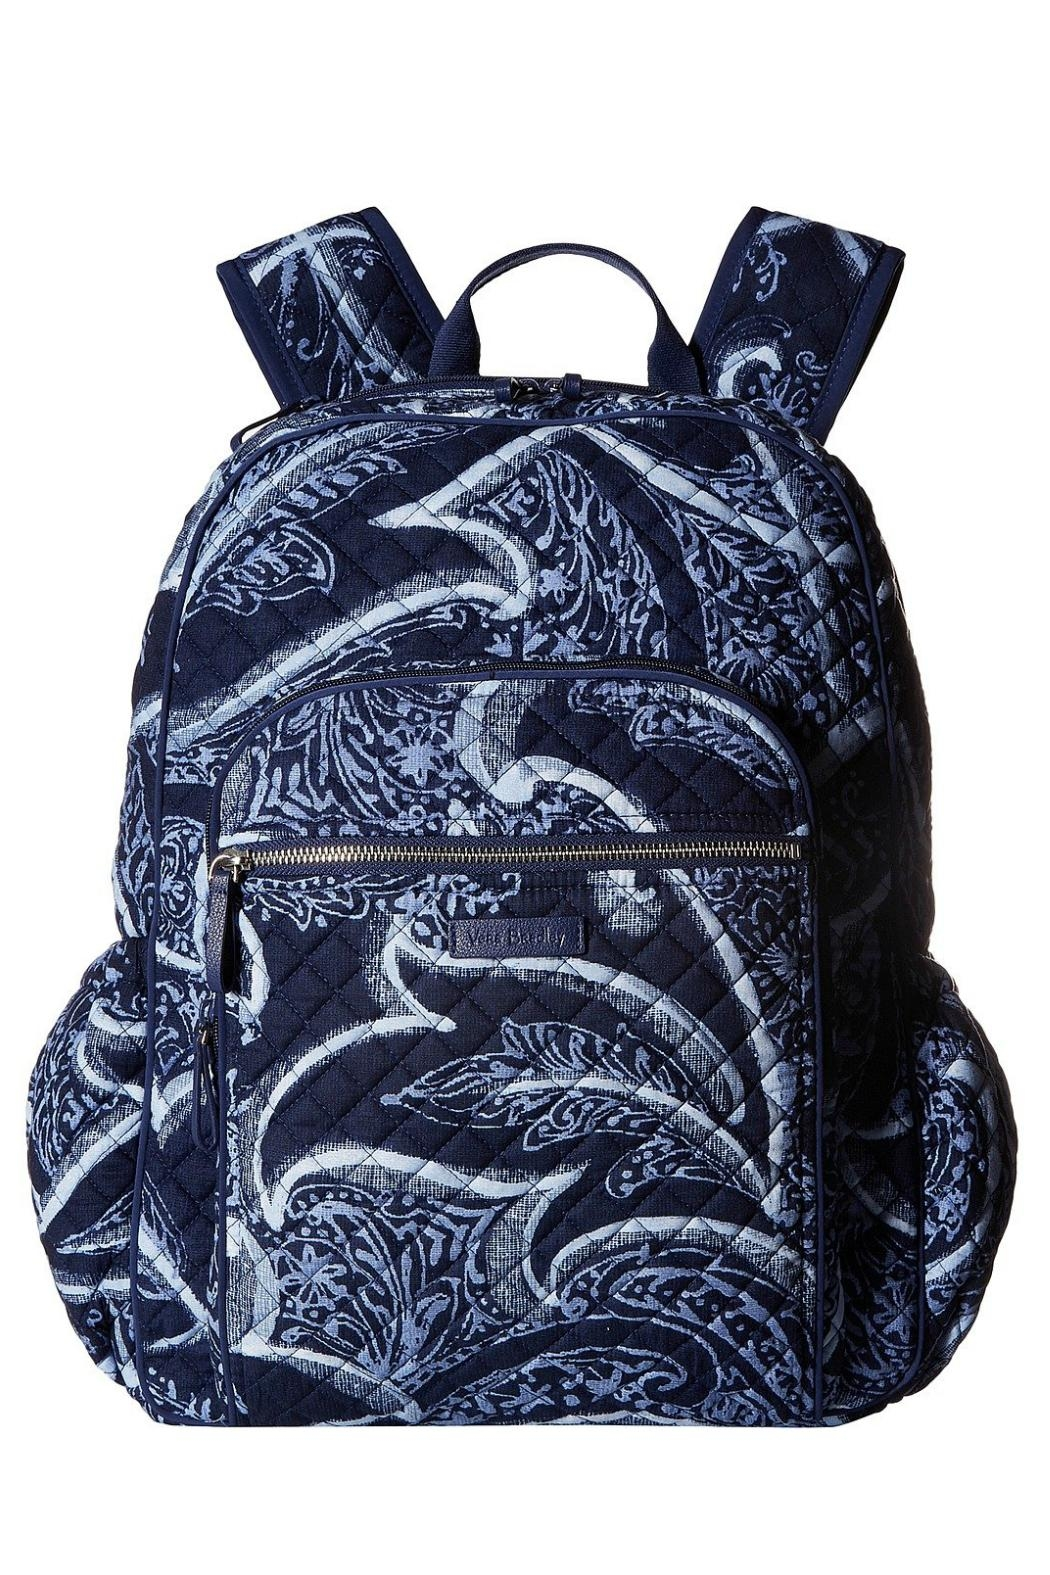 Vera Bradley Indio Campus Backpack - Main Image